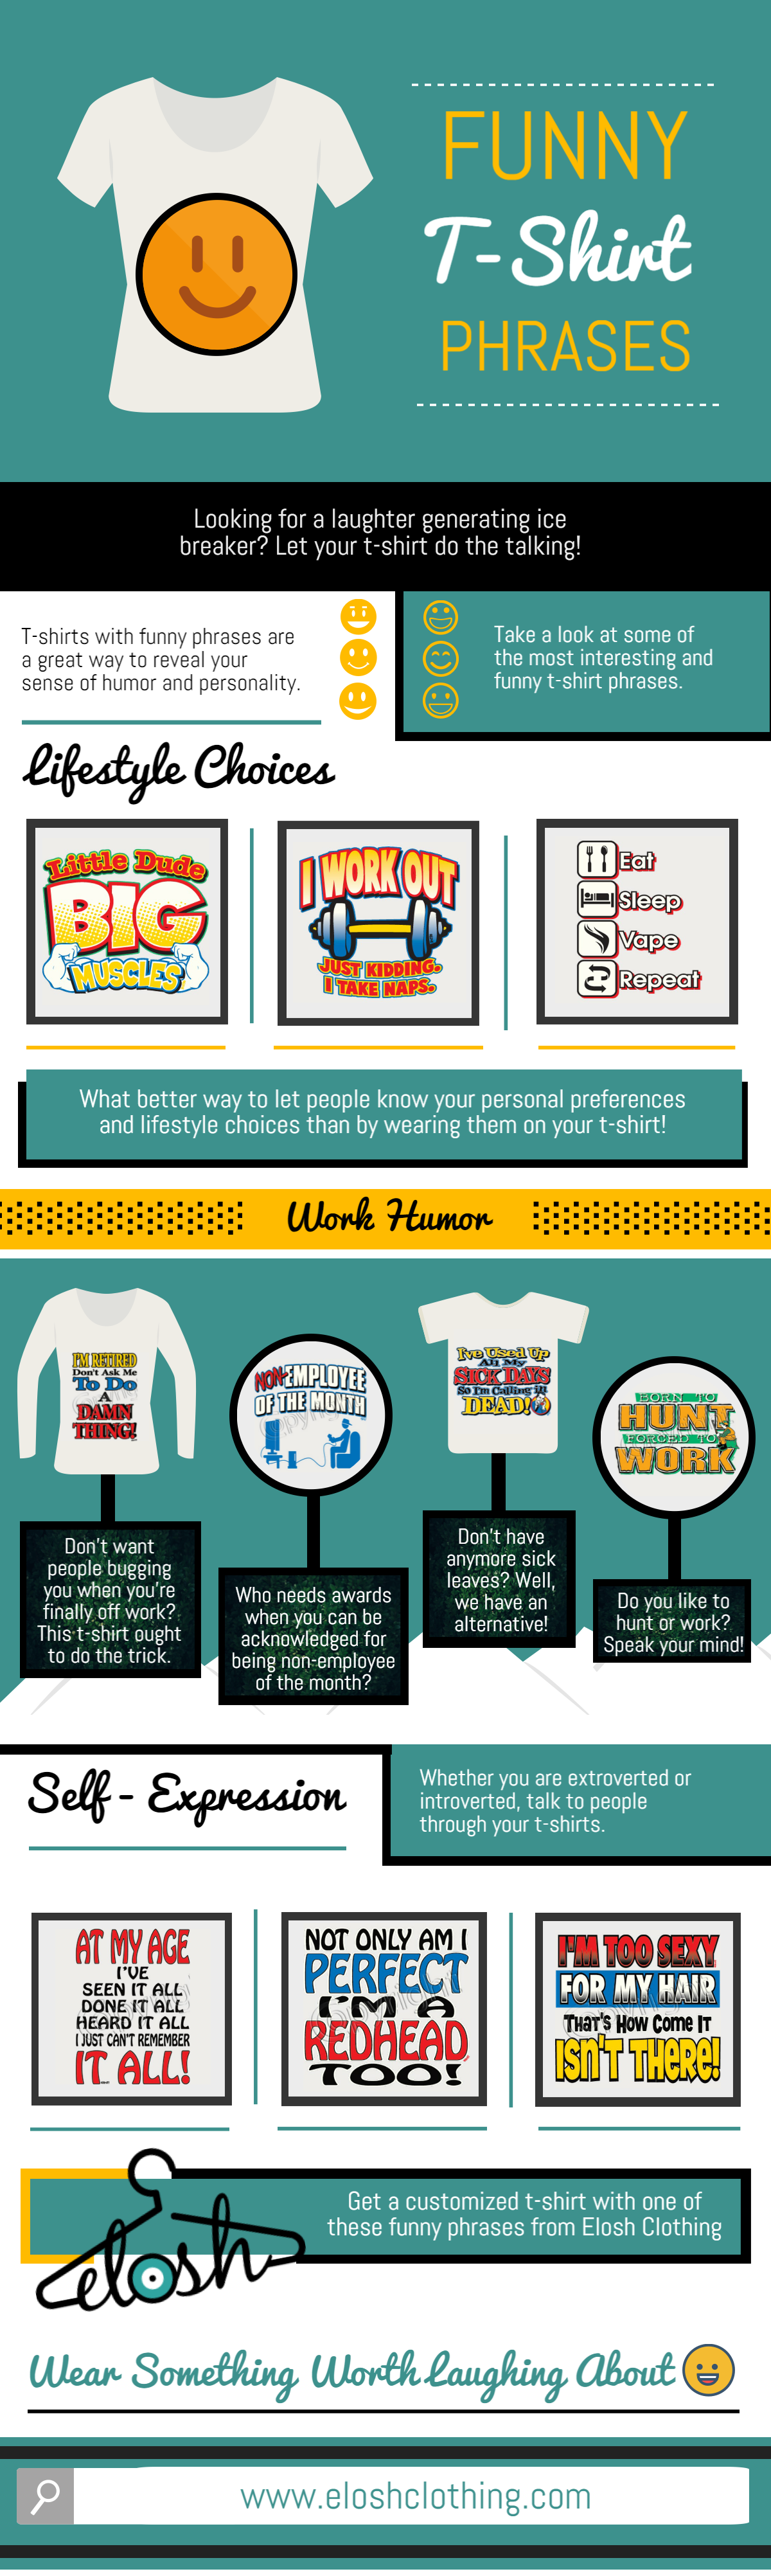 Funny t-shirt phrases